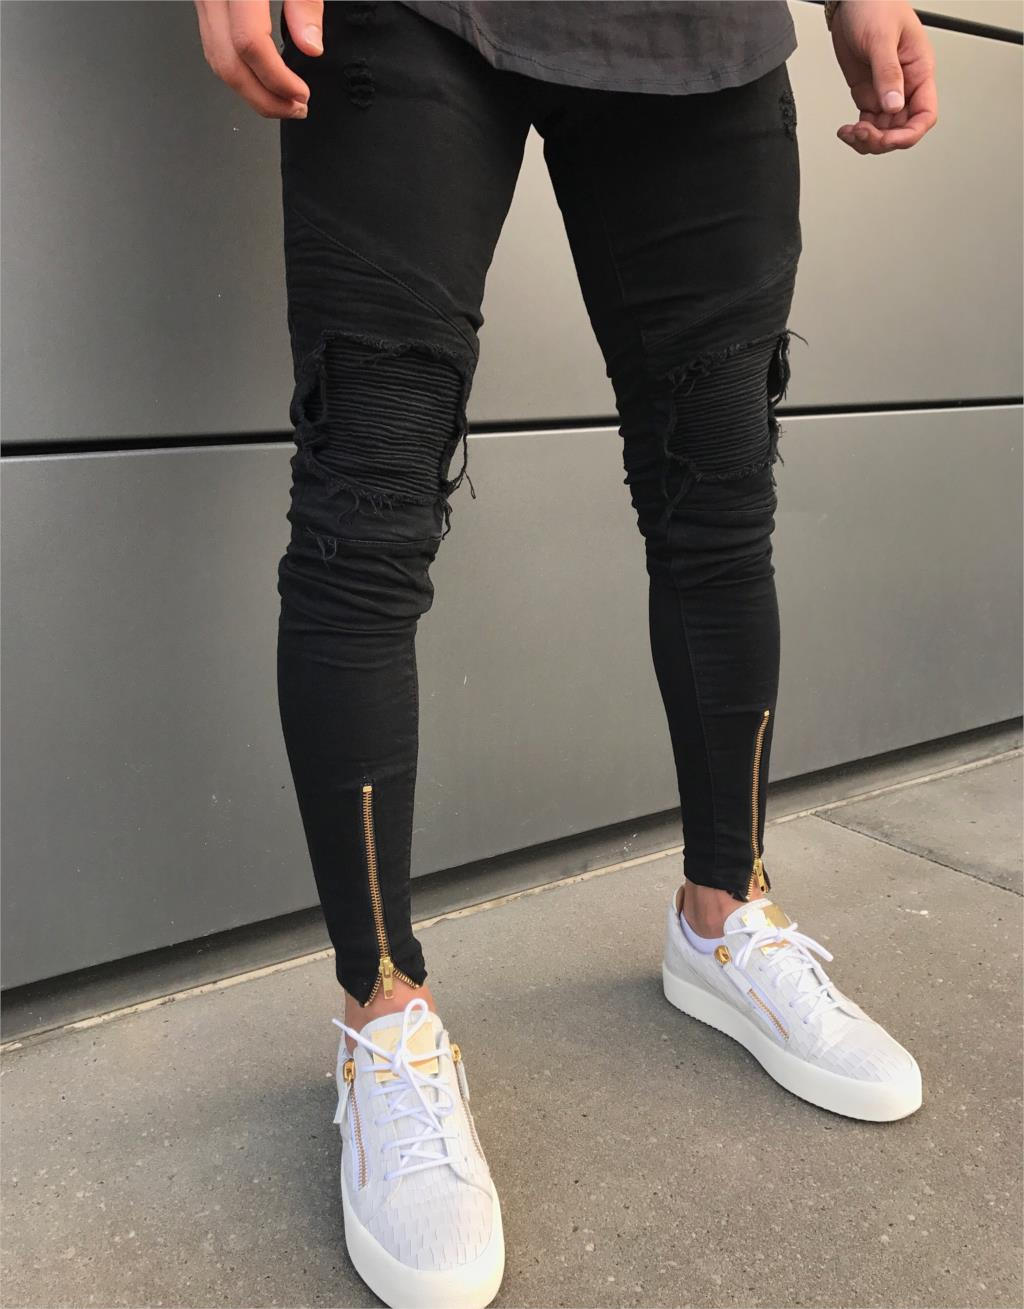 MJARTORIA  New 2019 Men's Hip-hop Hole Pants Fashion Jeans Slim Men Jeans Big Size Brand Jeans Skinny Stretch Slim Fit Pants